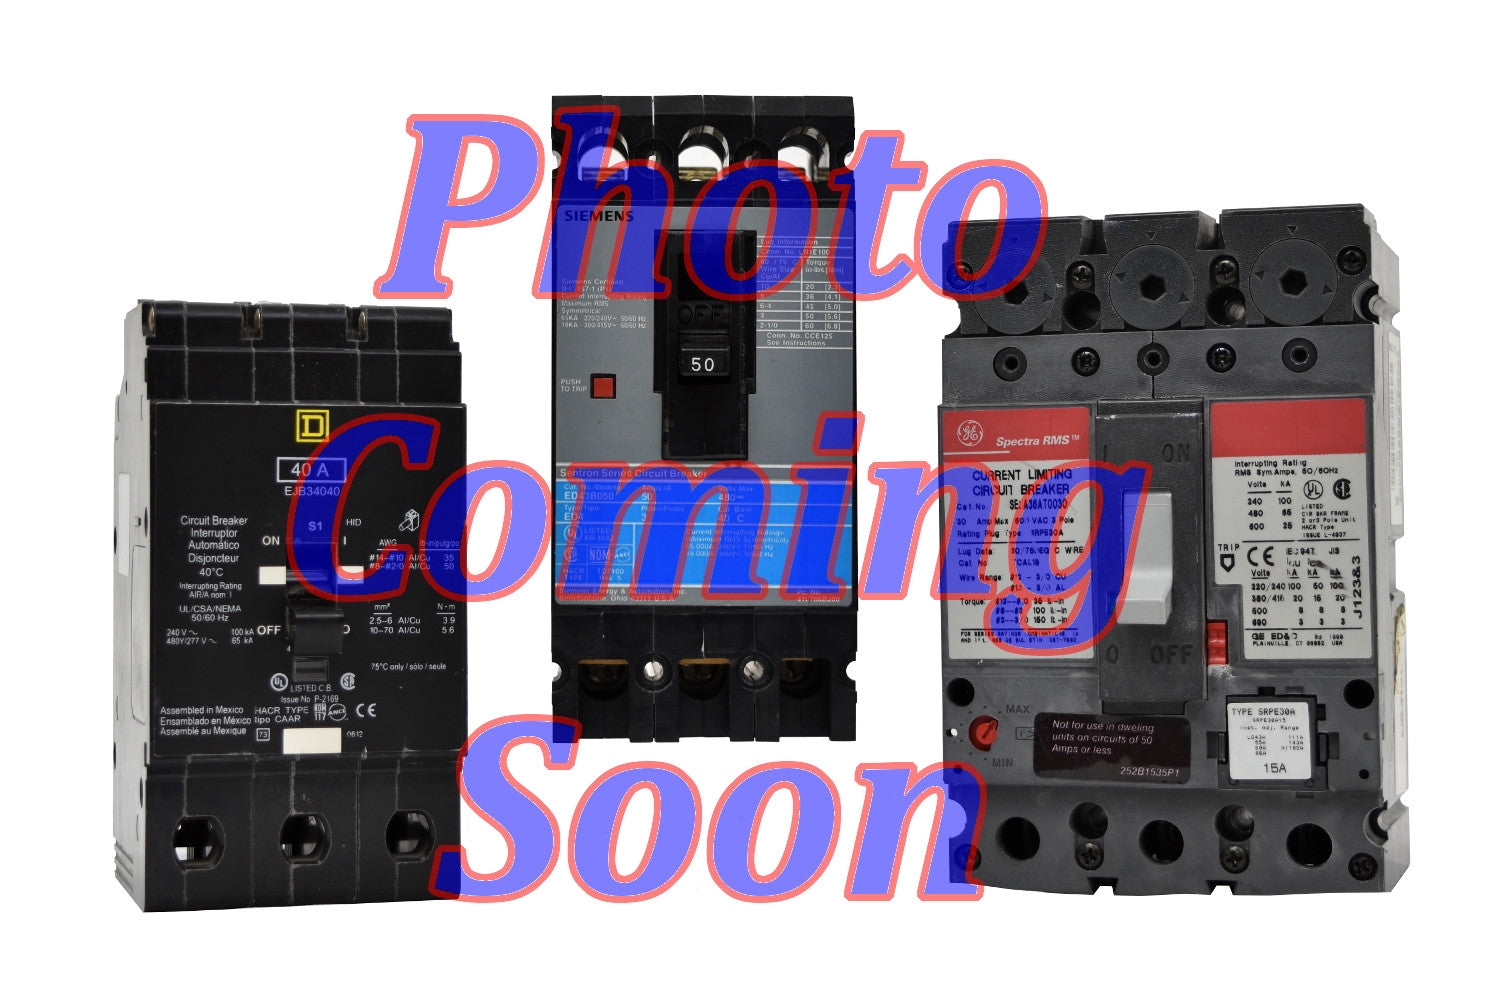 General Electric FCN326TE090R1 Circuit Breakers